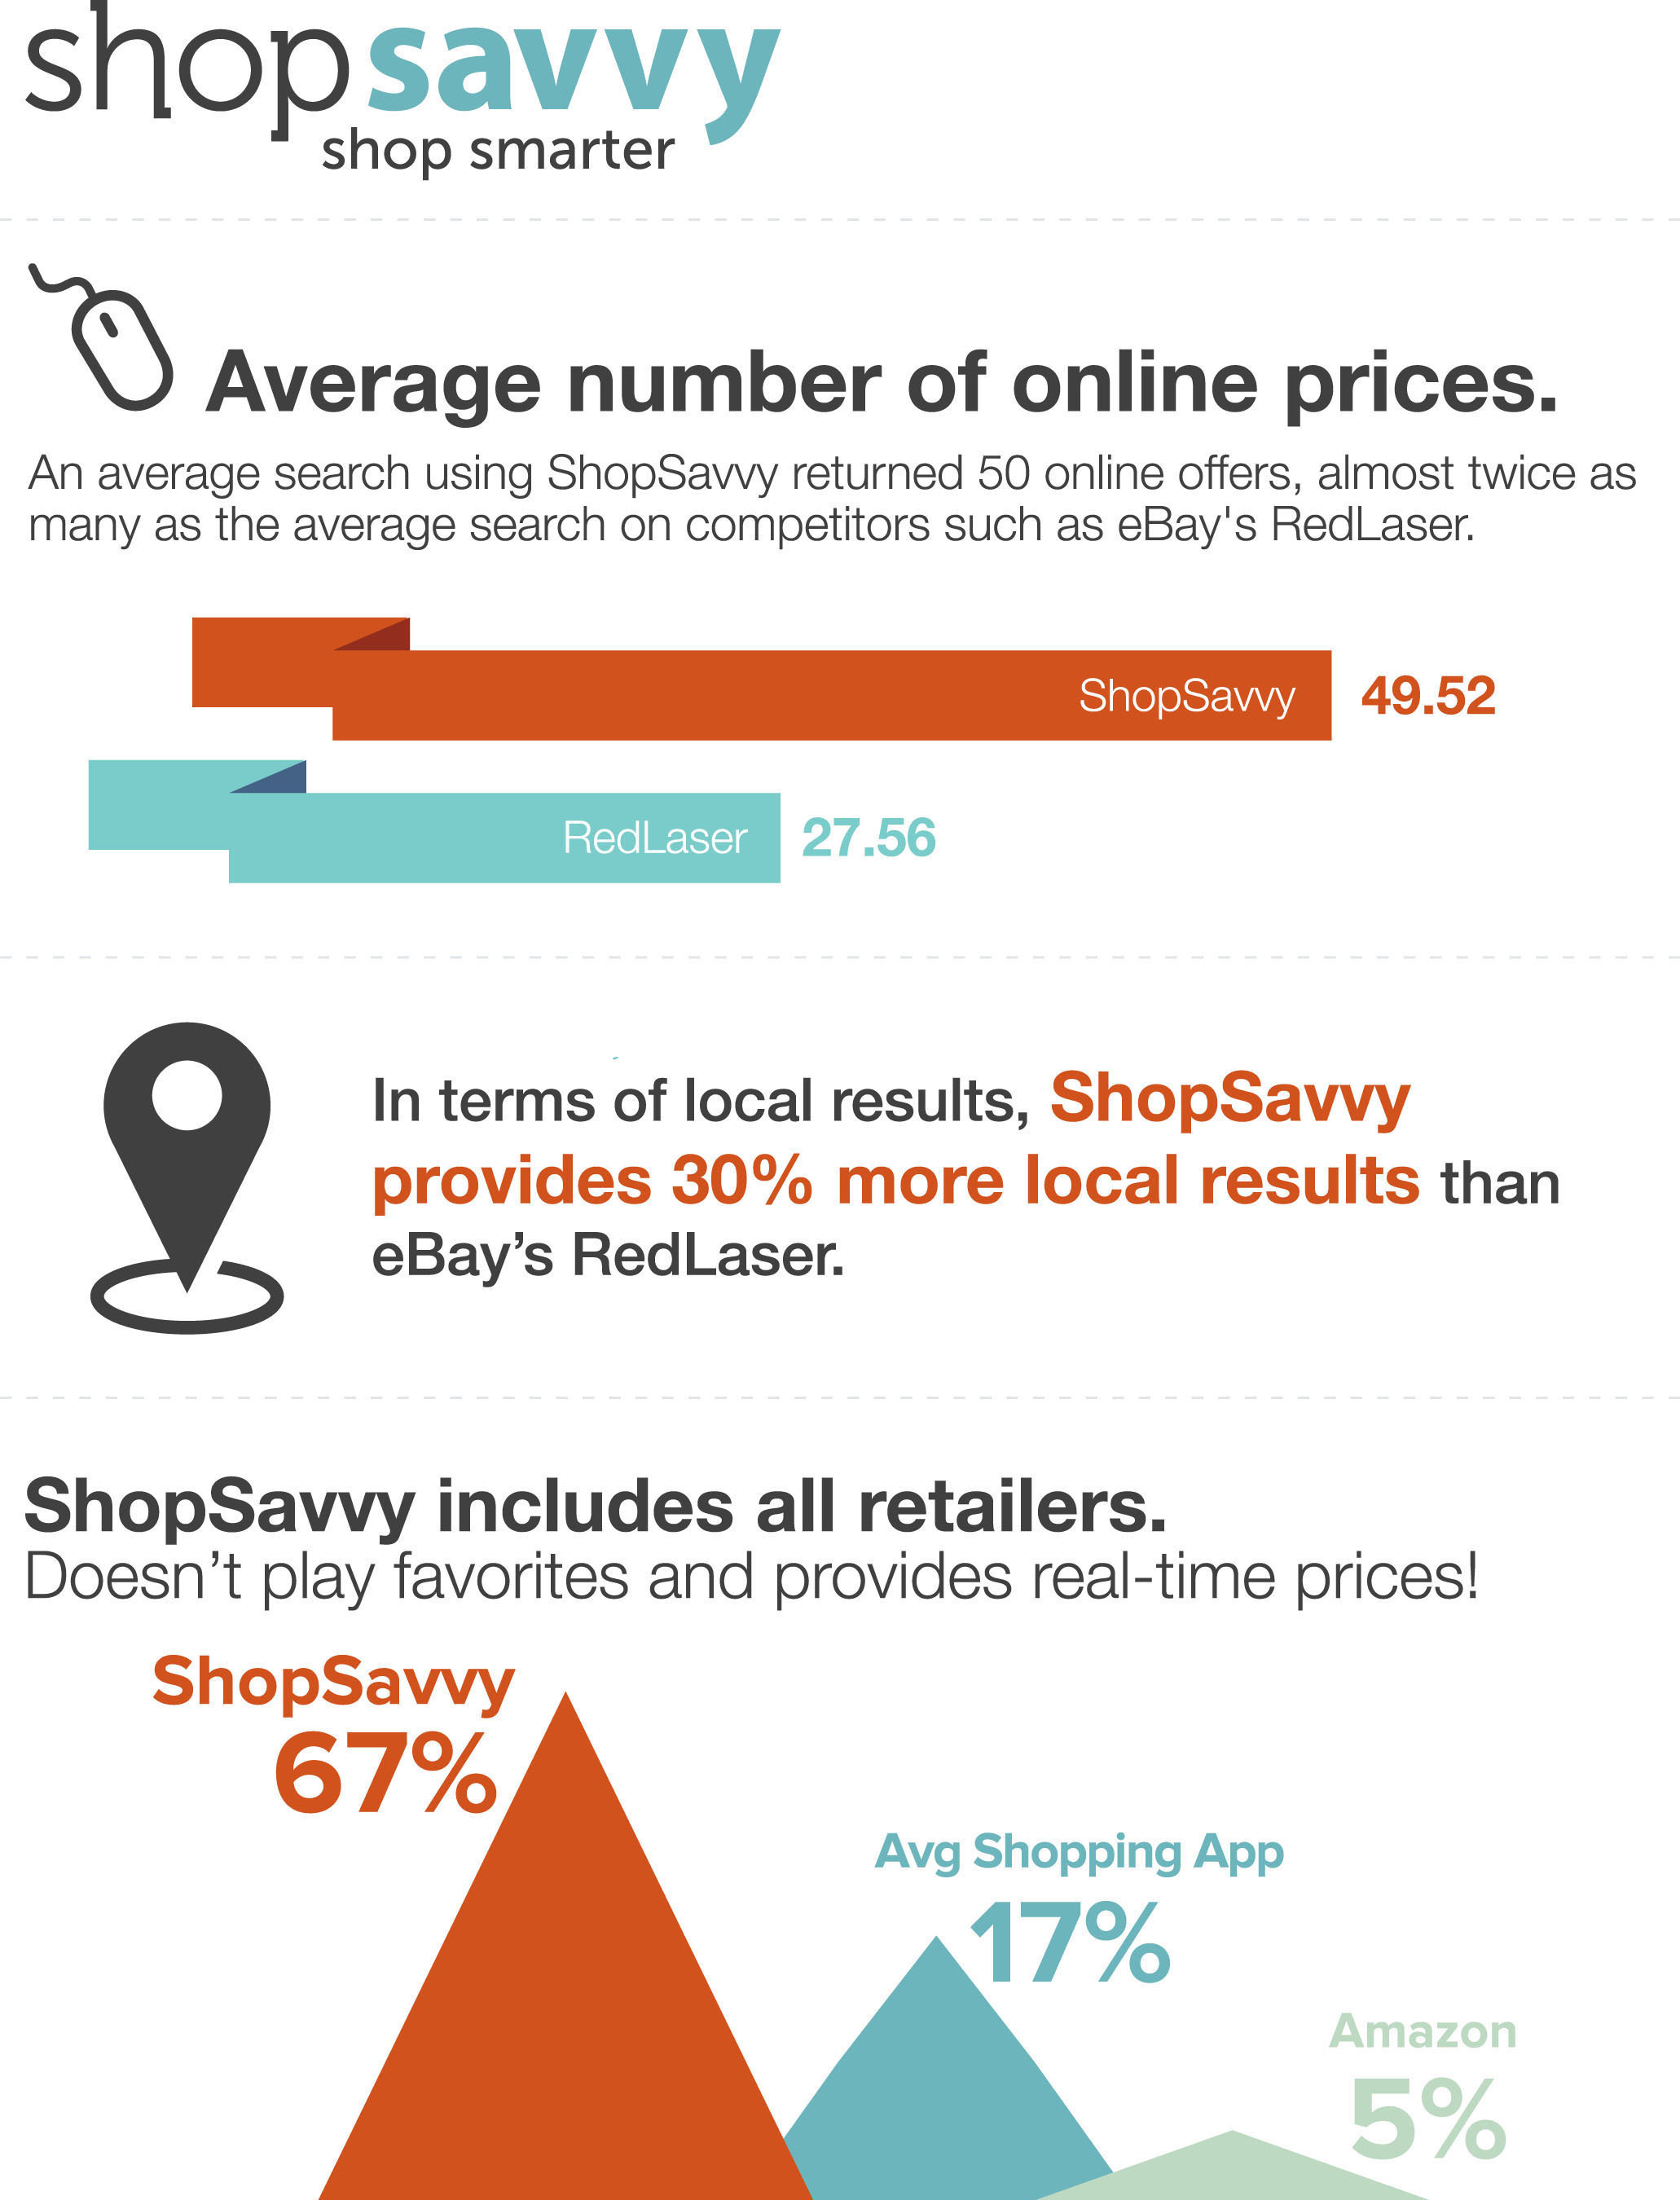 When It Comes to Delivering Real-Time Online and Local Store Results ShopSavvy Soars Above the Pack